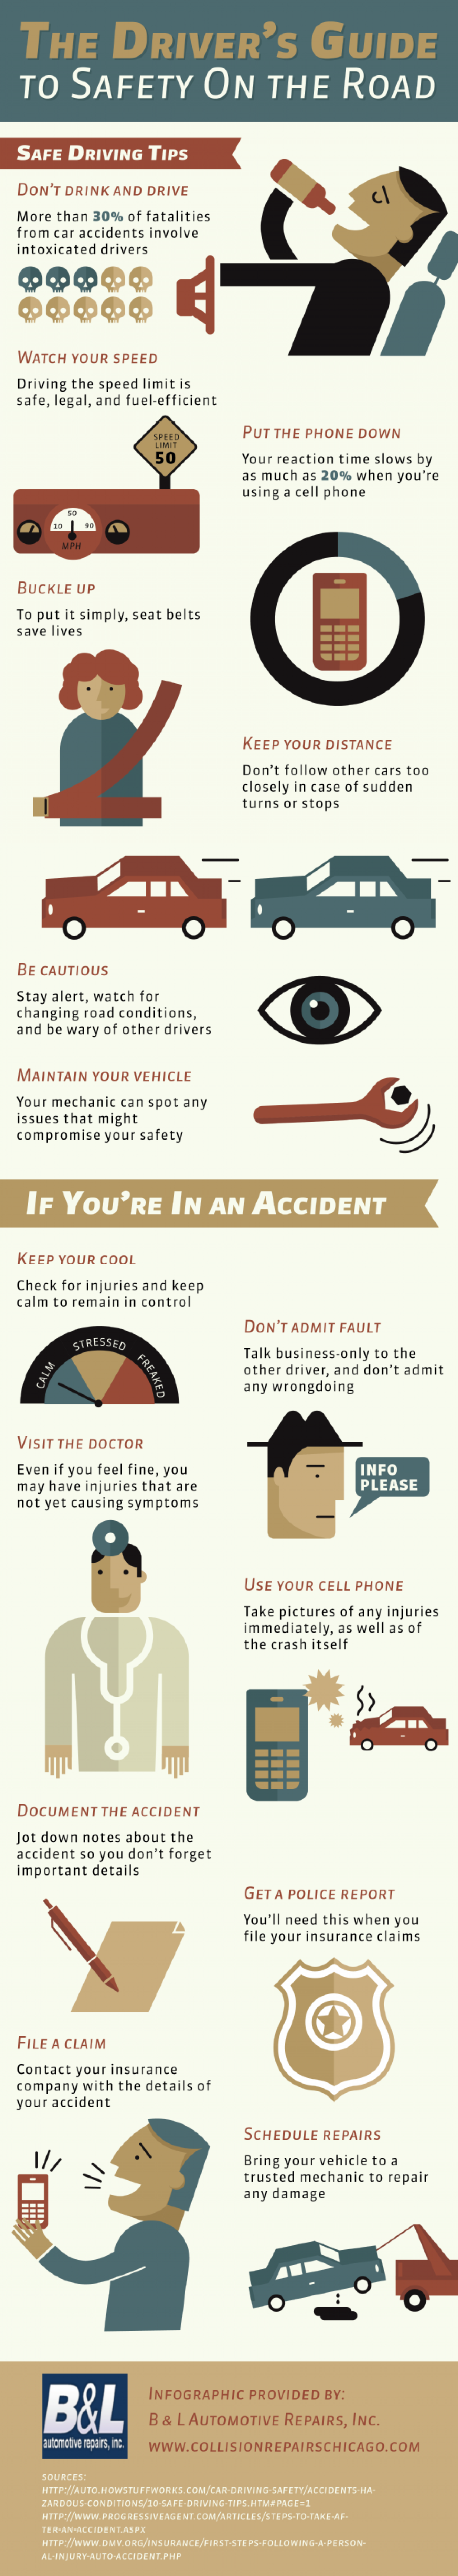 The Driver's Guide to Safety On the Road Infographic